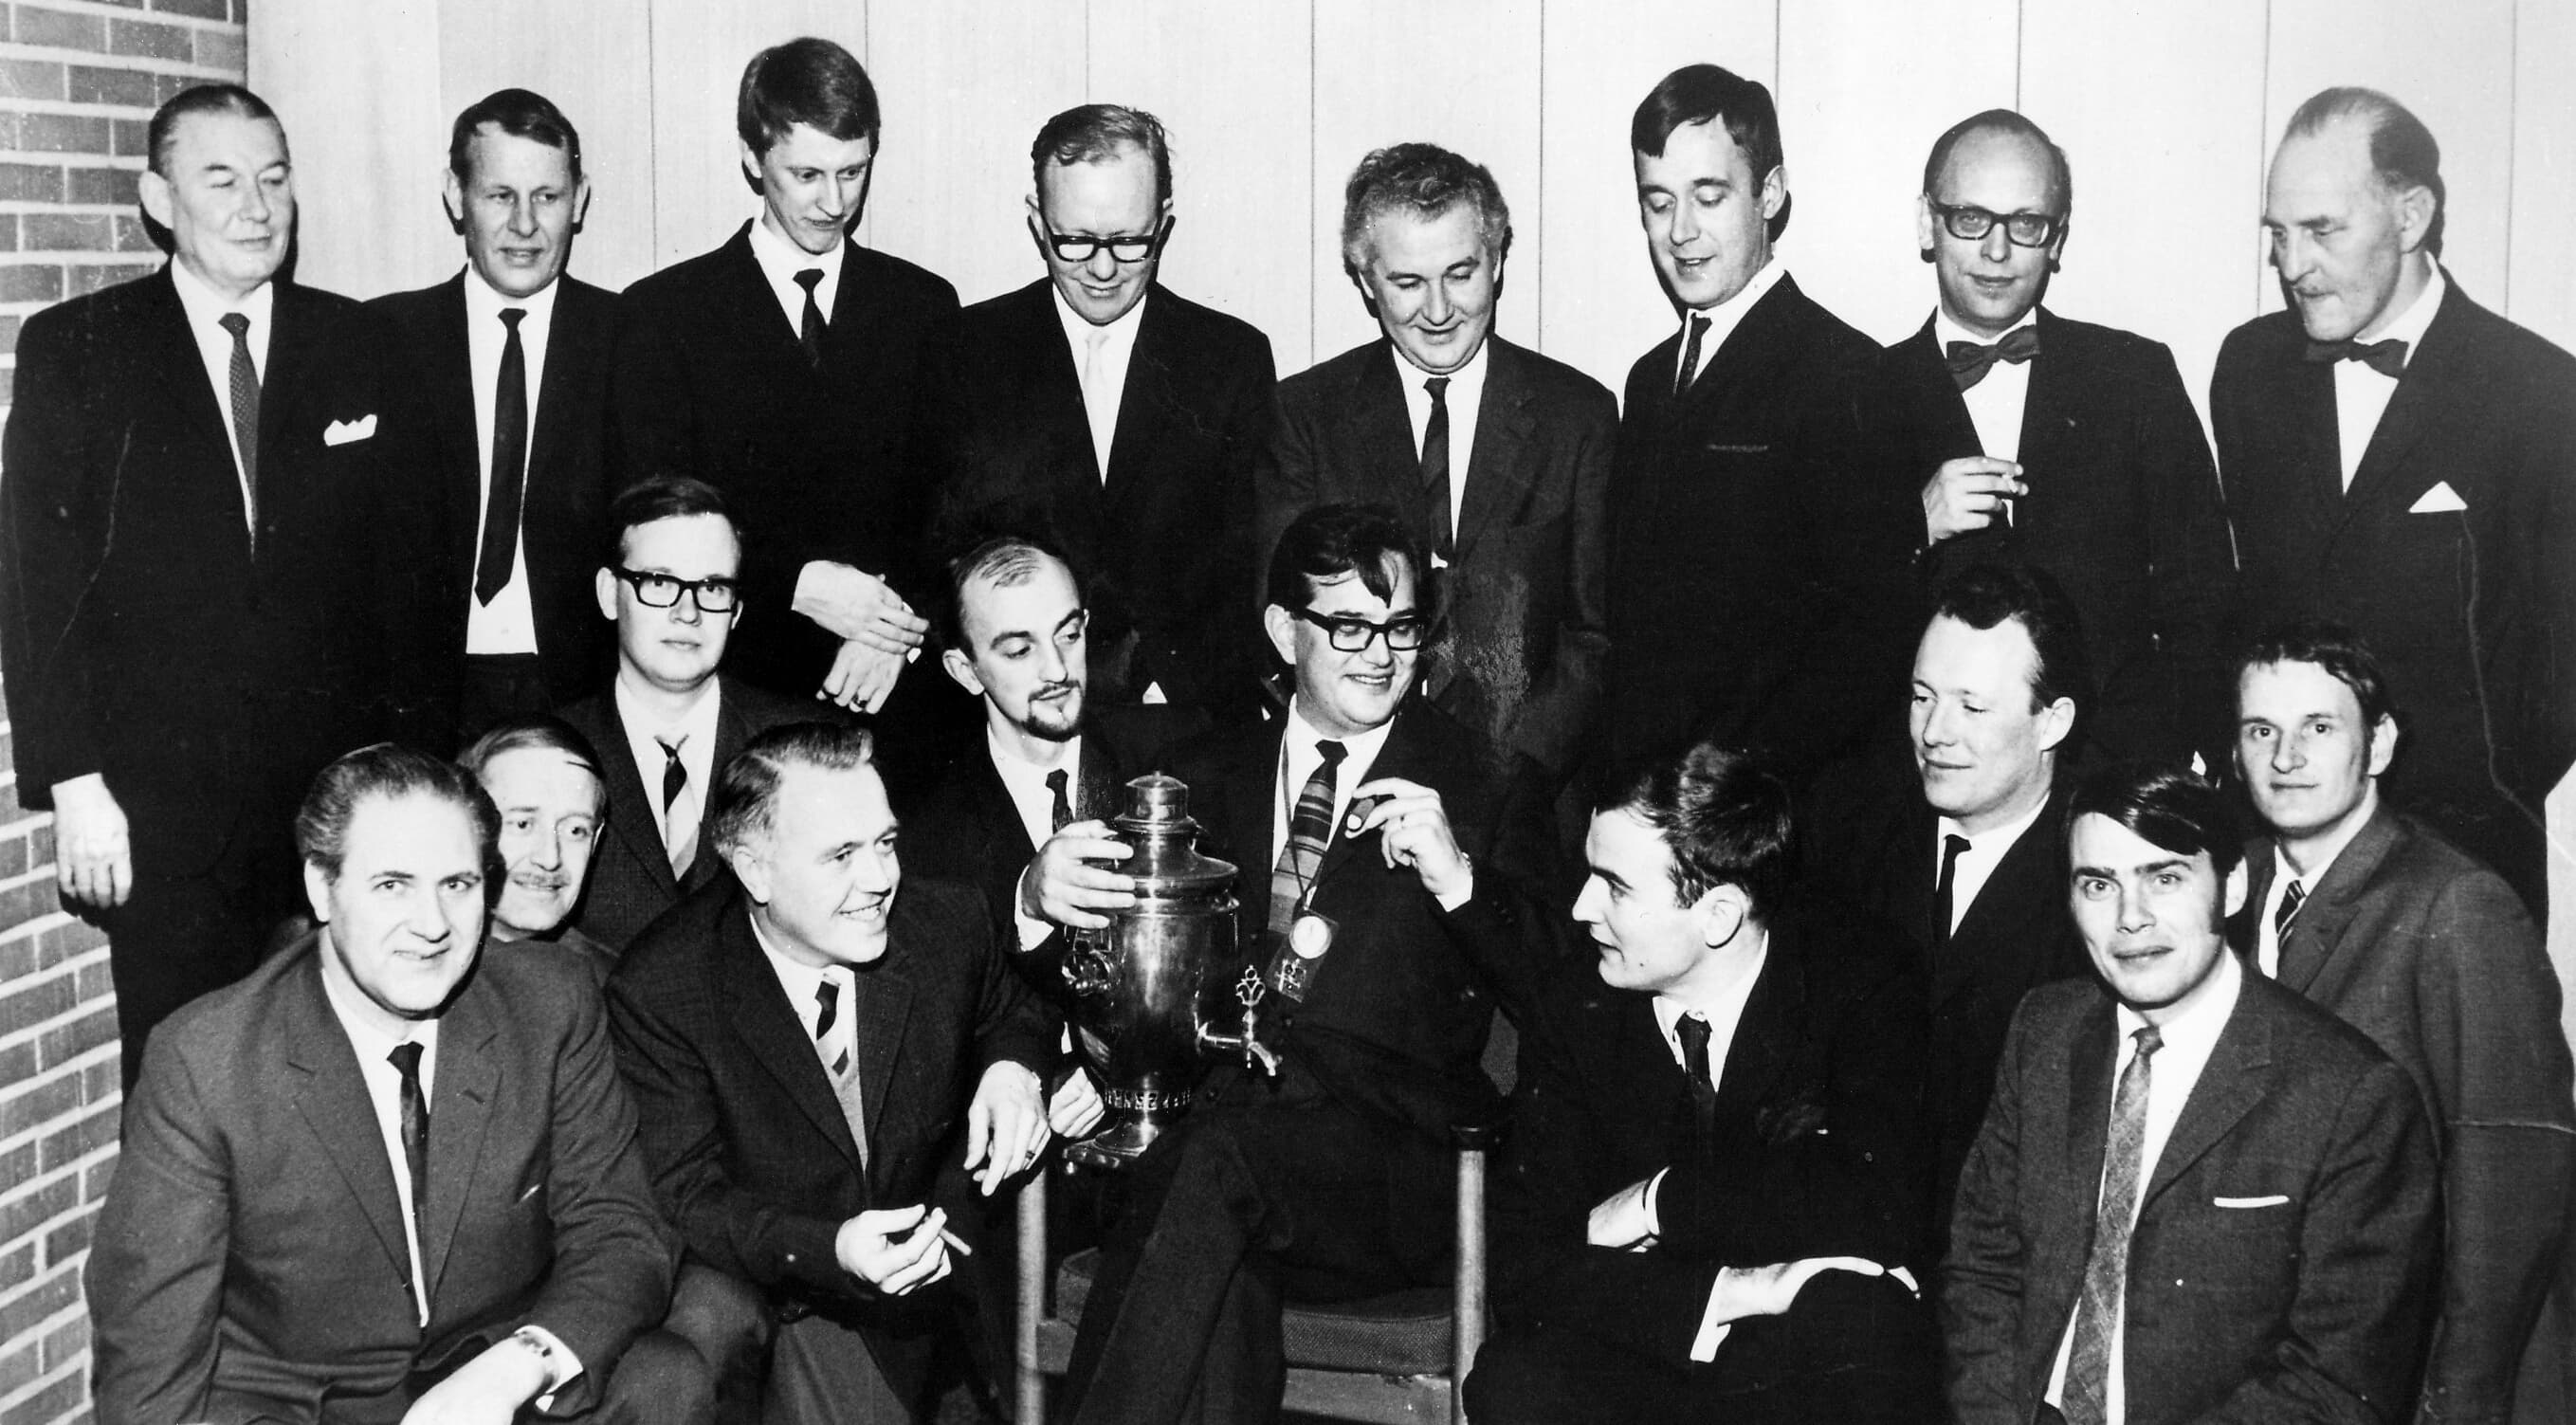 The Pressductor Team headed by Dr. Orvar Dahle (top row, far right) in the 1960s